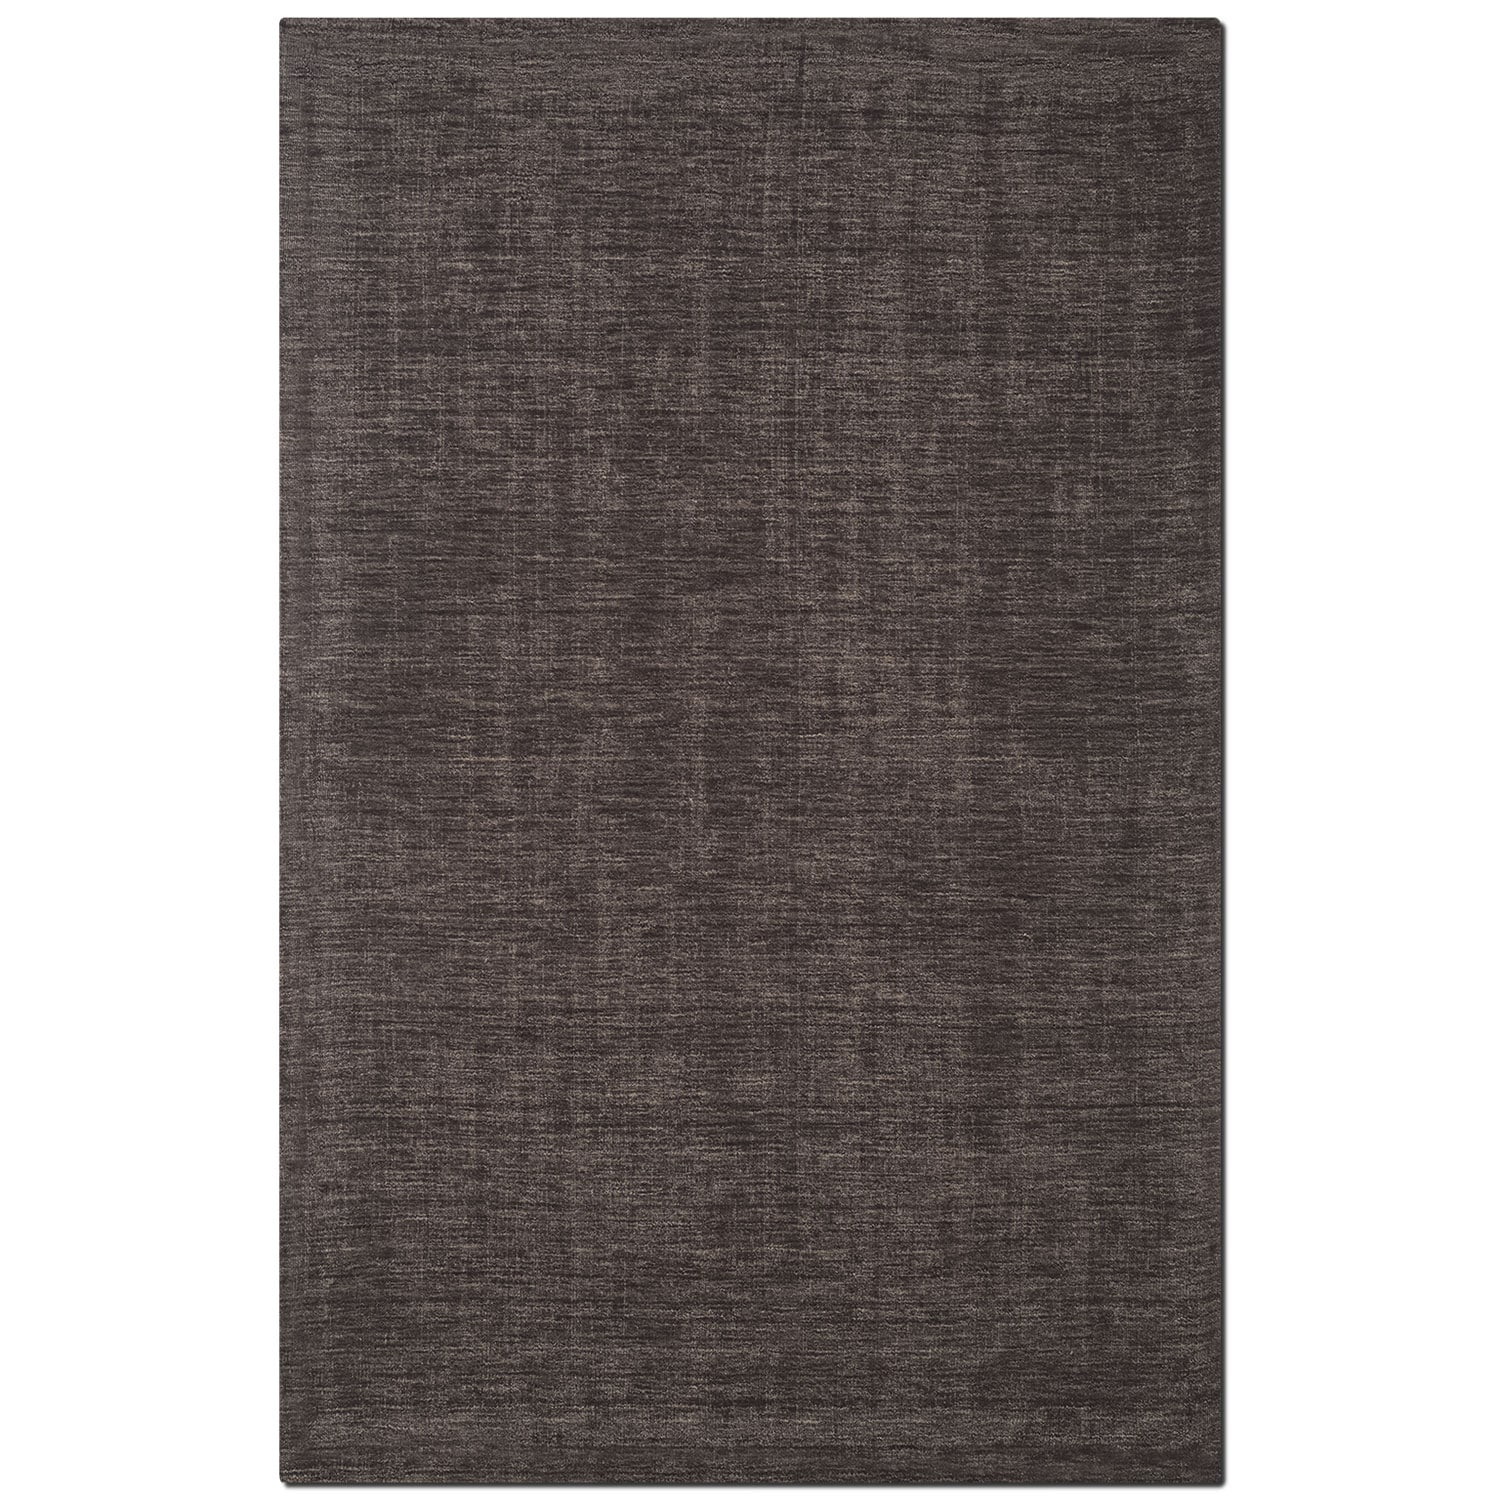 Rugs - Basics 8' x 10' Area Rug - Charcoal